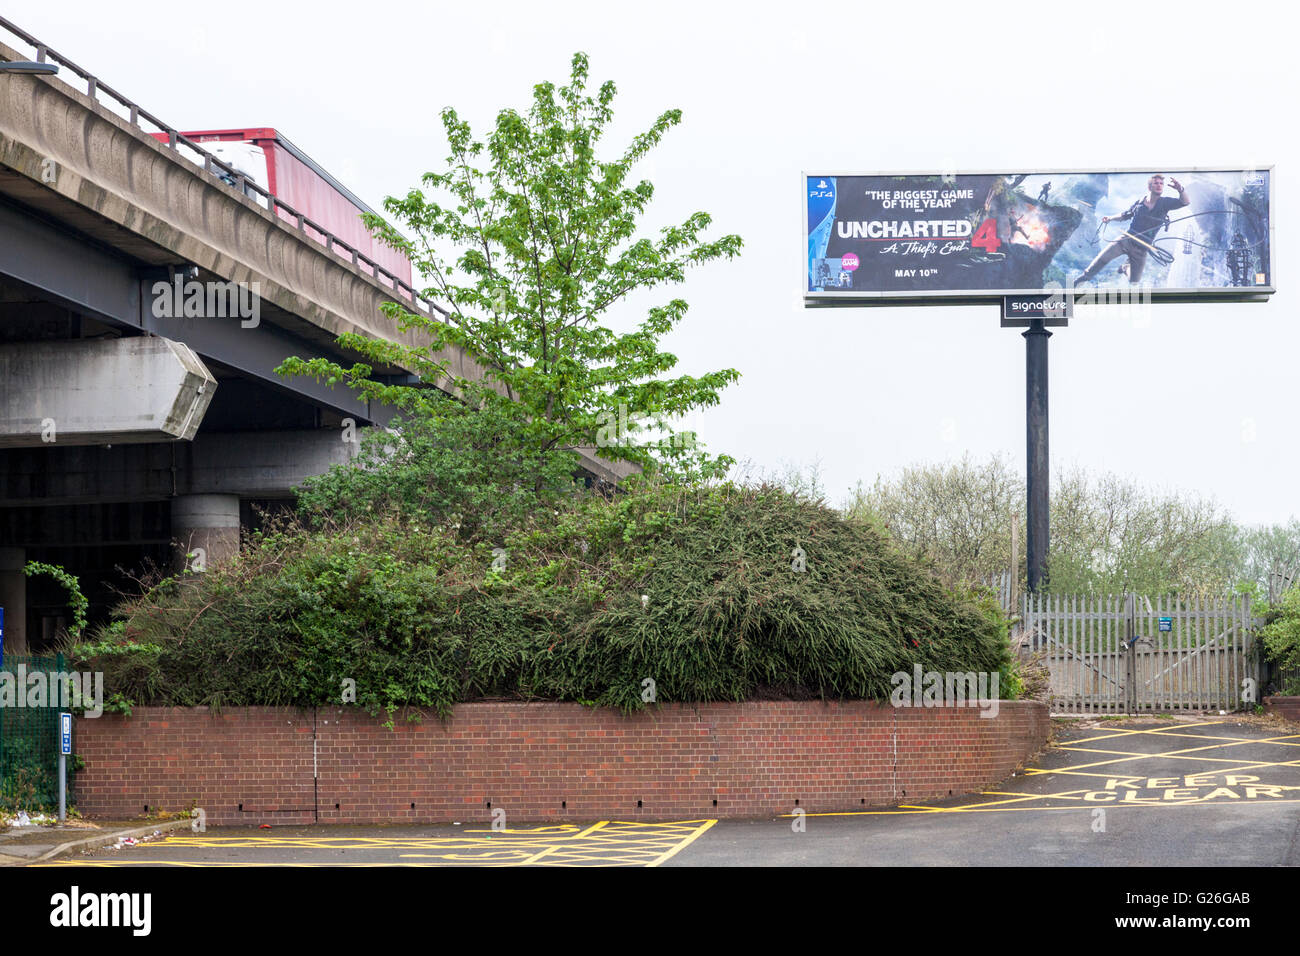 High level electronic advertising billboard next to the M6 motorway, Bescot, Walsall, West Midlands, England, UK - Stock Image